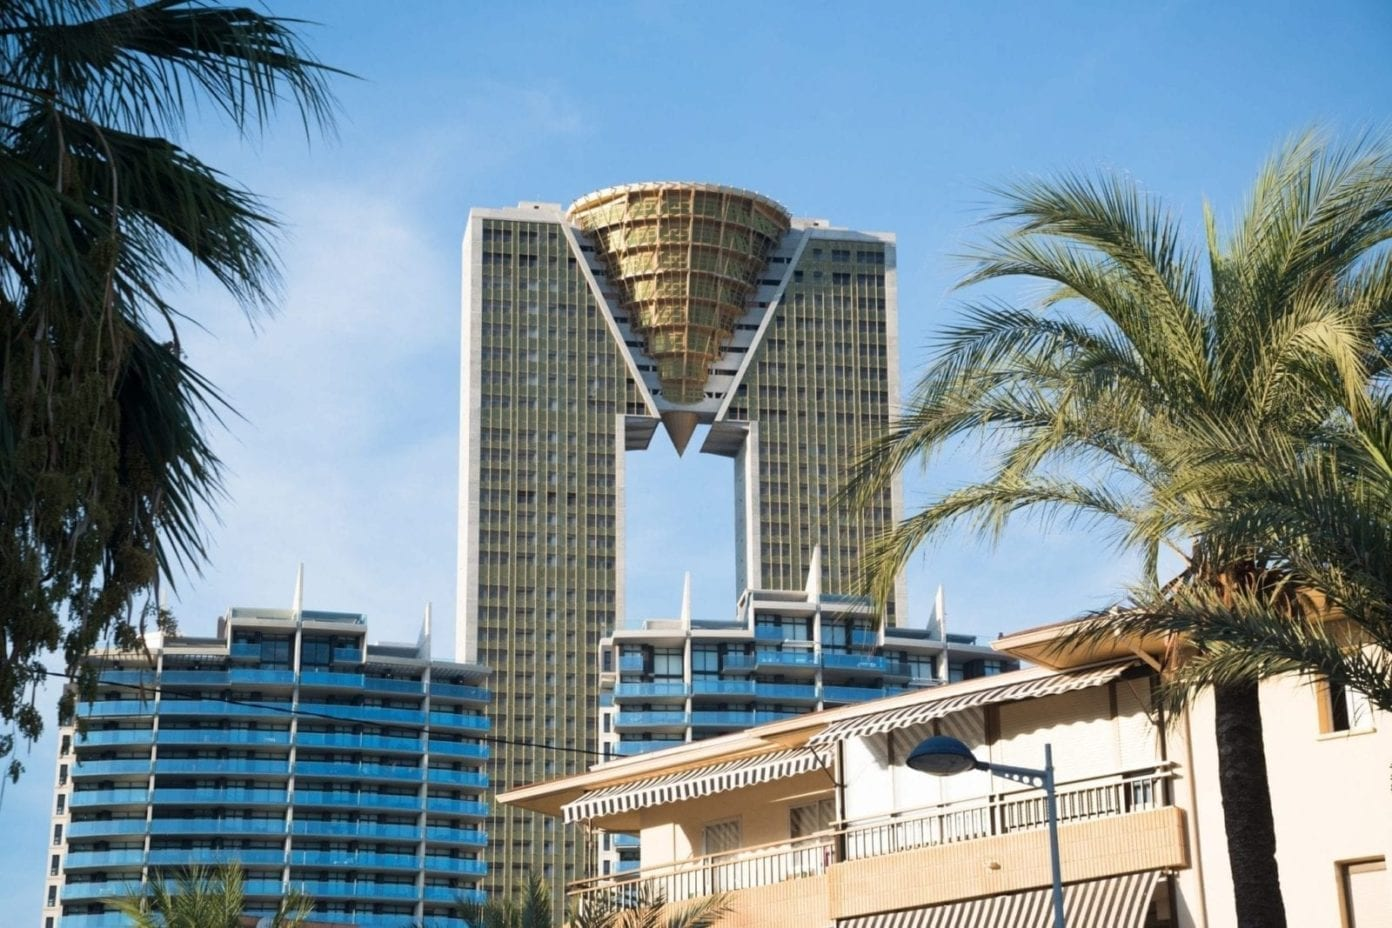 The Intempo Tower's Owner Invests in the 22@ District Despite the Suspension of Construction Licences